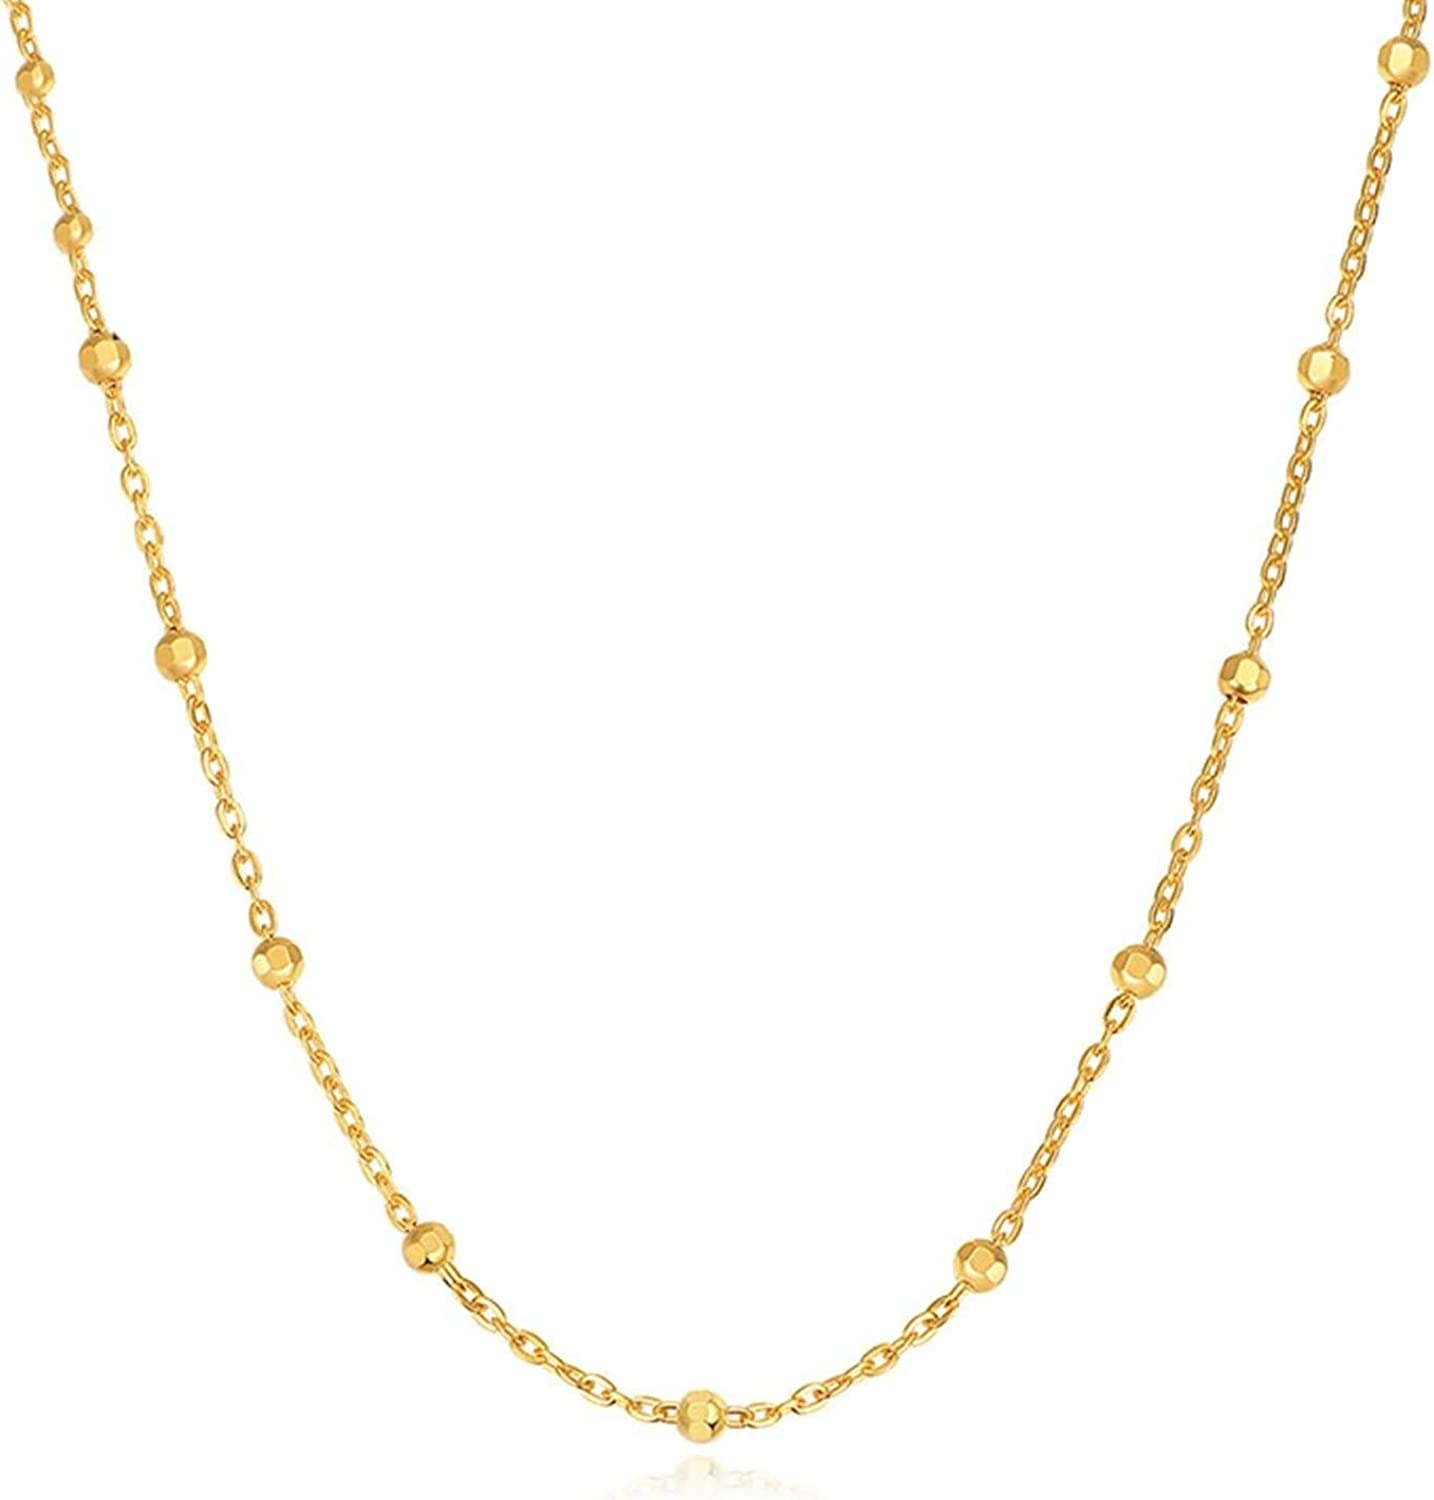 Epinki 18K Yellow Gold Women We Chain for Excellent Max 87% OFF Ball Necklace